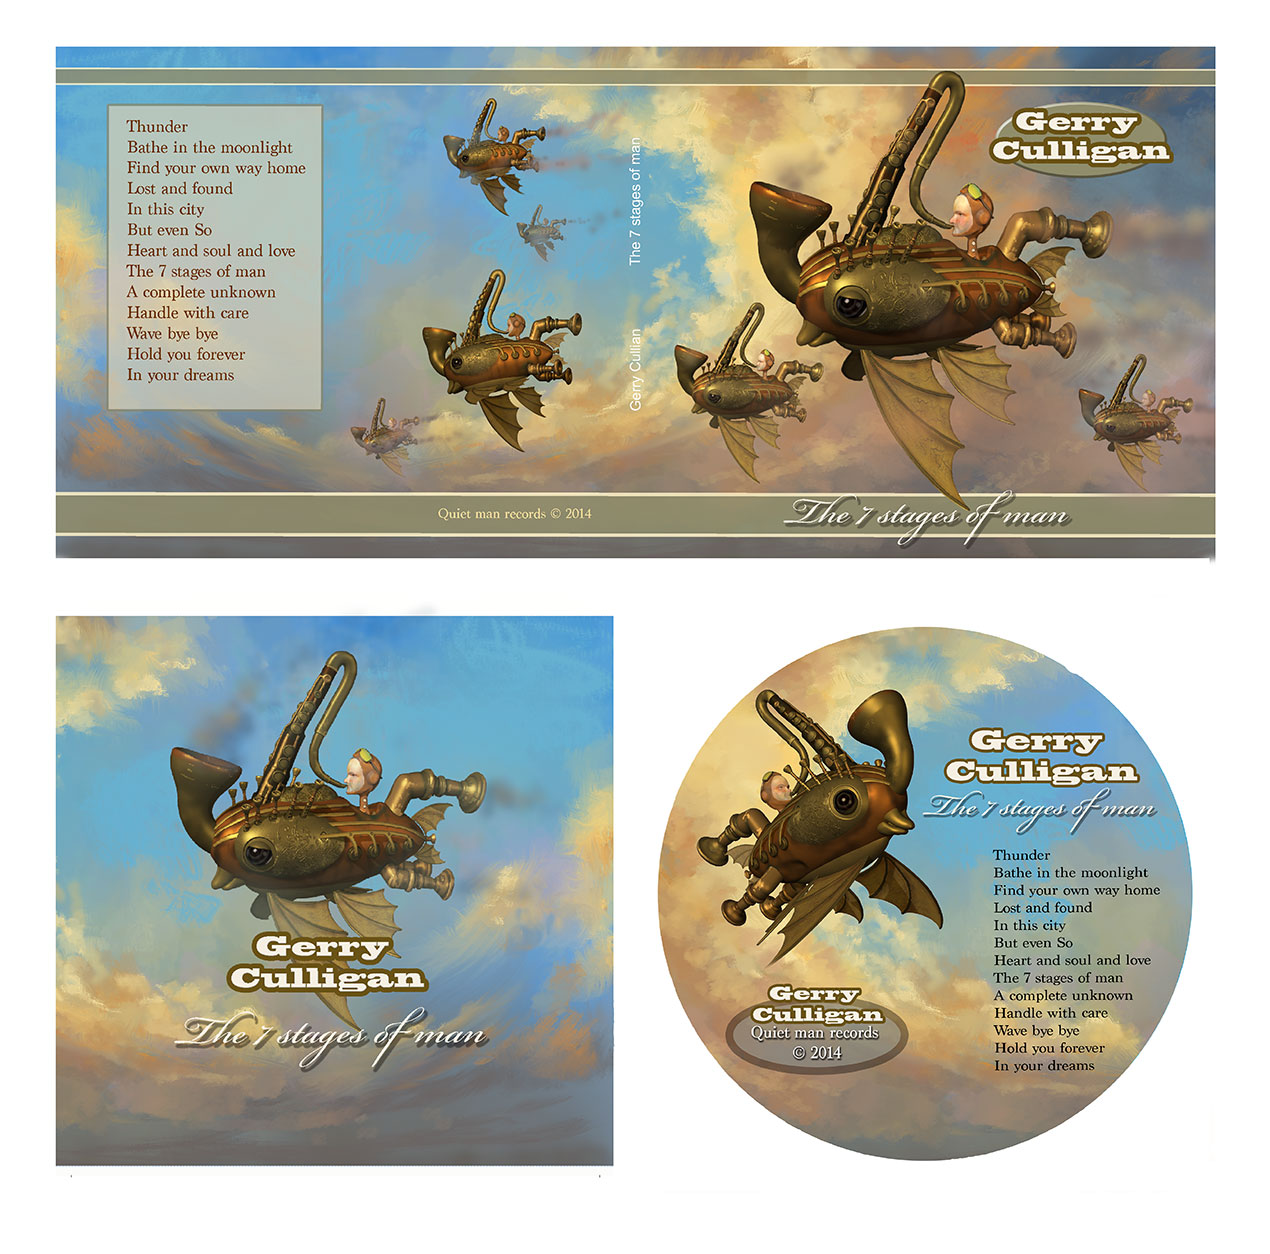 CD design nathan smith